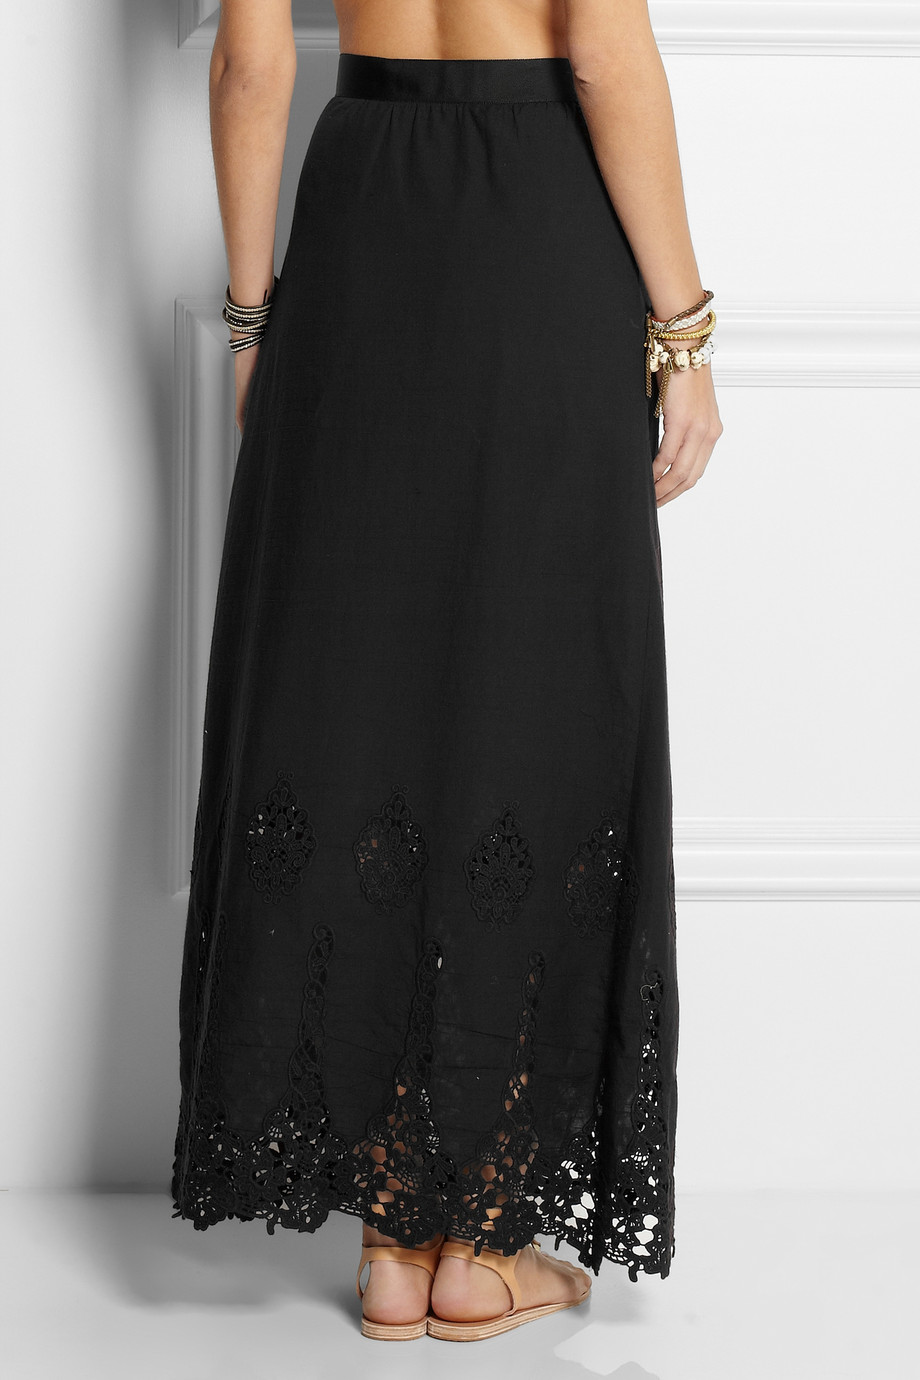 Miguelina Celine Broderie Anglaise Cotton Maxi Skirt in Black | Lyst